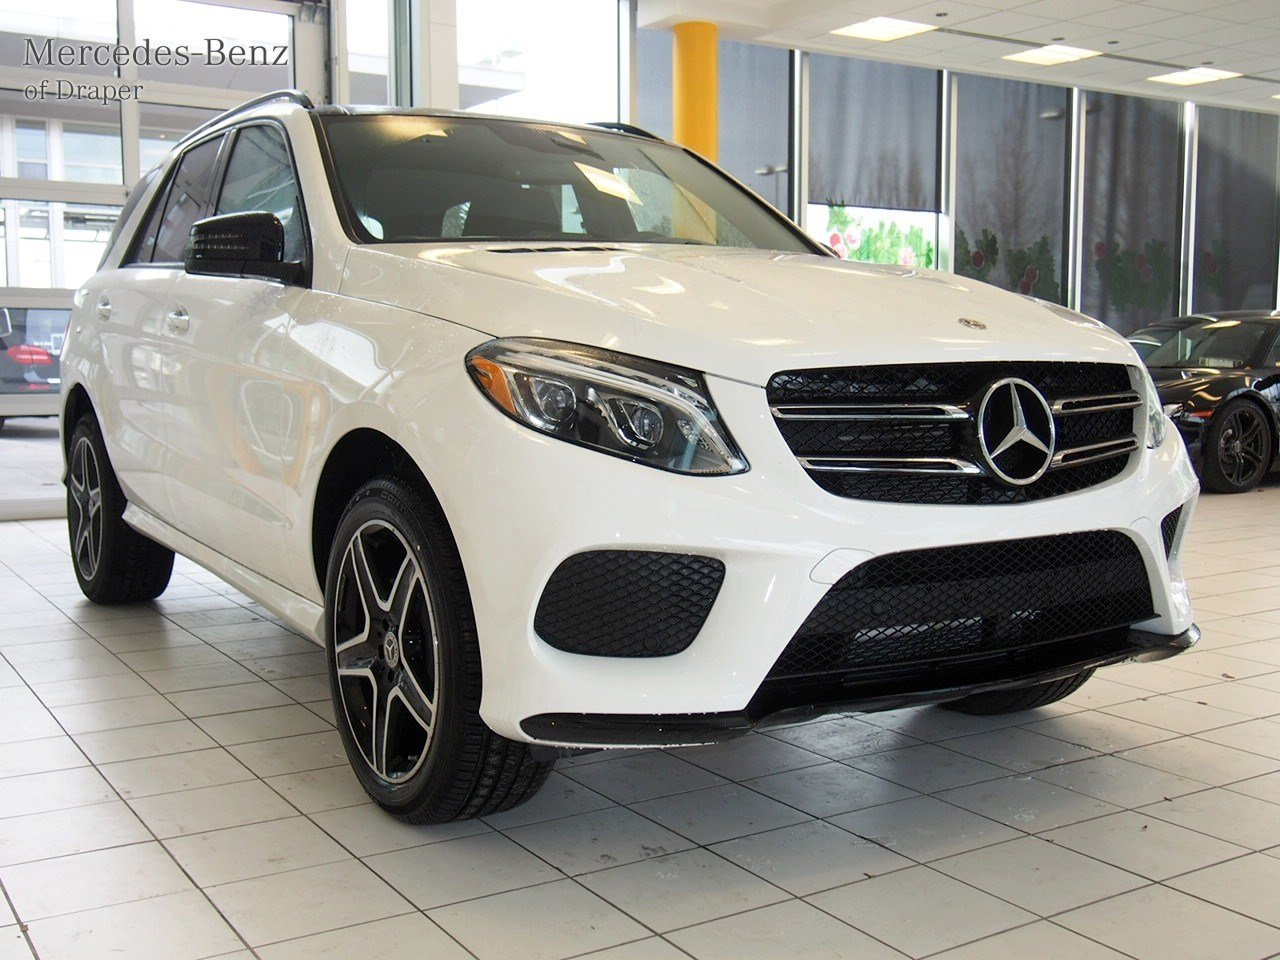 New 2018 Mercedes-Benz GLE GLE 350 4MATIC® SUV in Draper #JB065460 | Mercedes-Benz of Draper